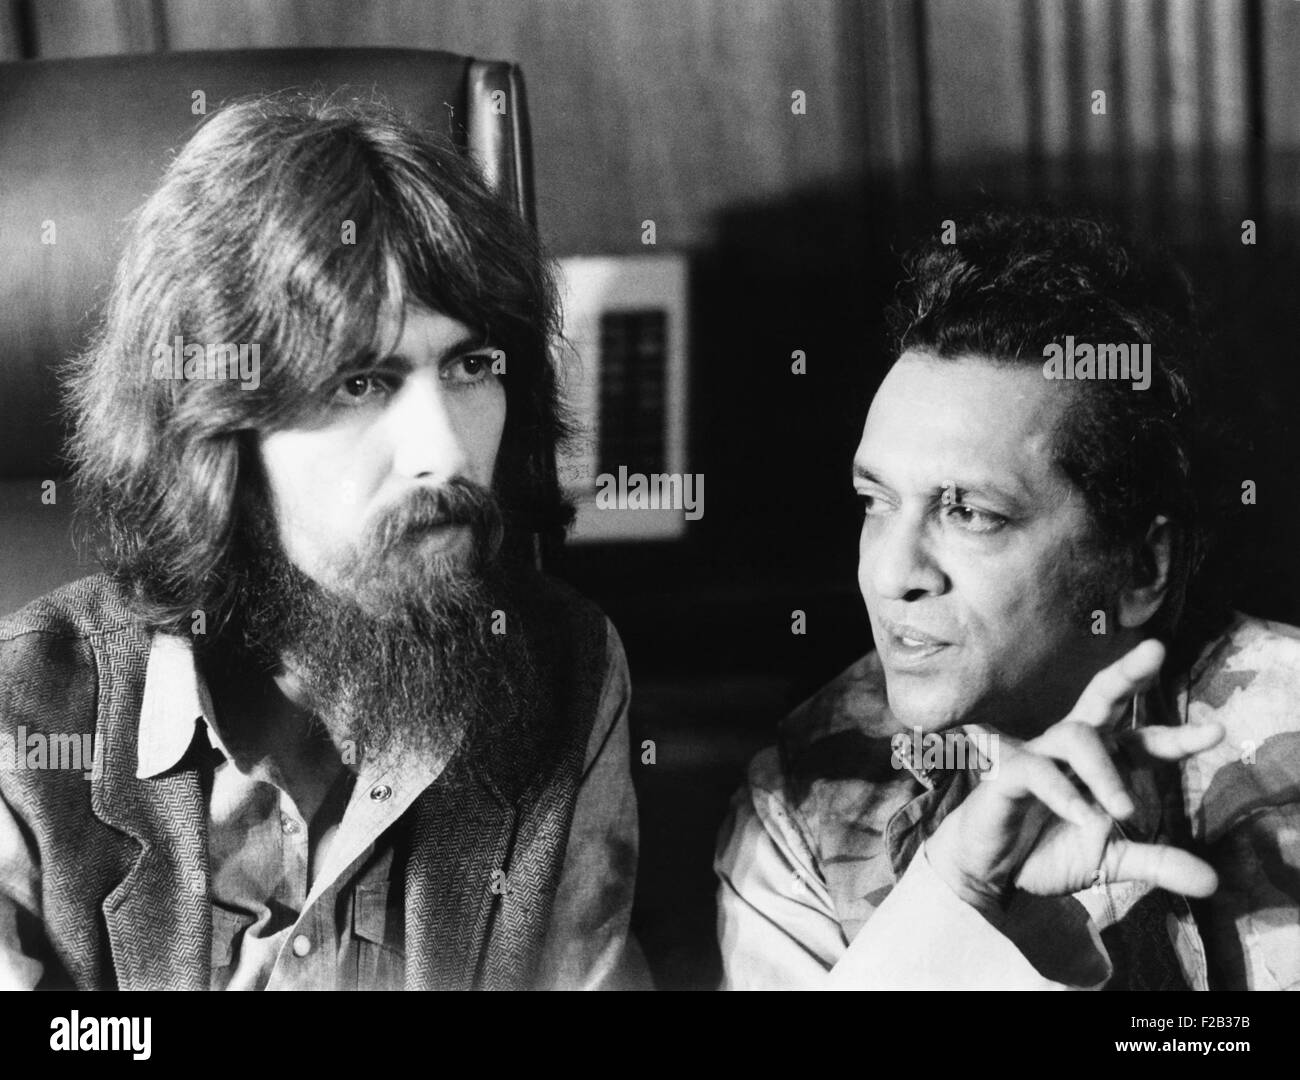 Former Beatle George Harrison (left) and Indian musician Ravi Shankar talk to newsmen in New York. July 27, 1971. Stock Photo